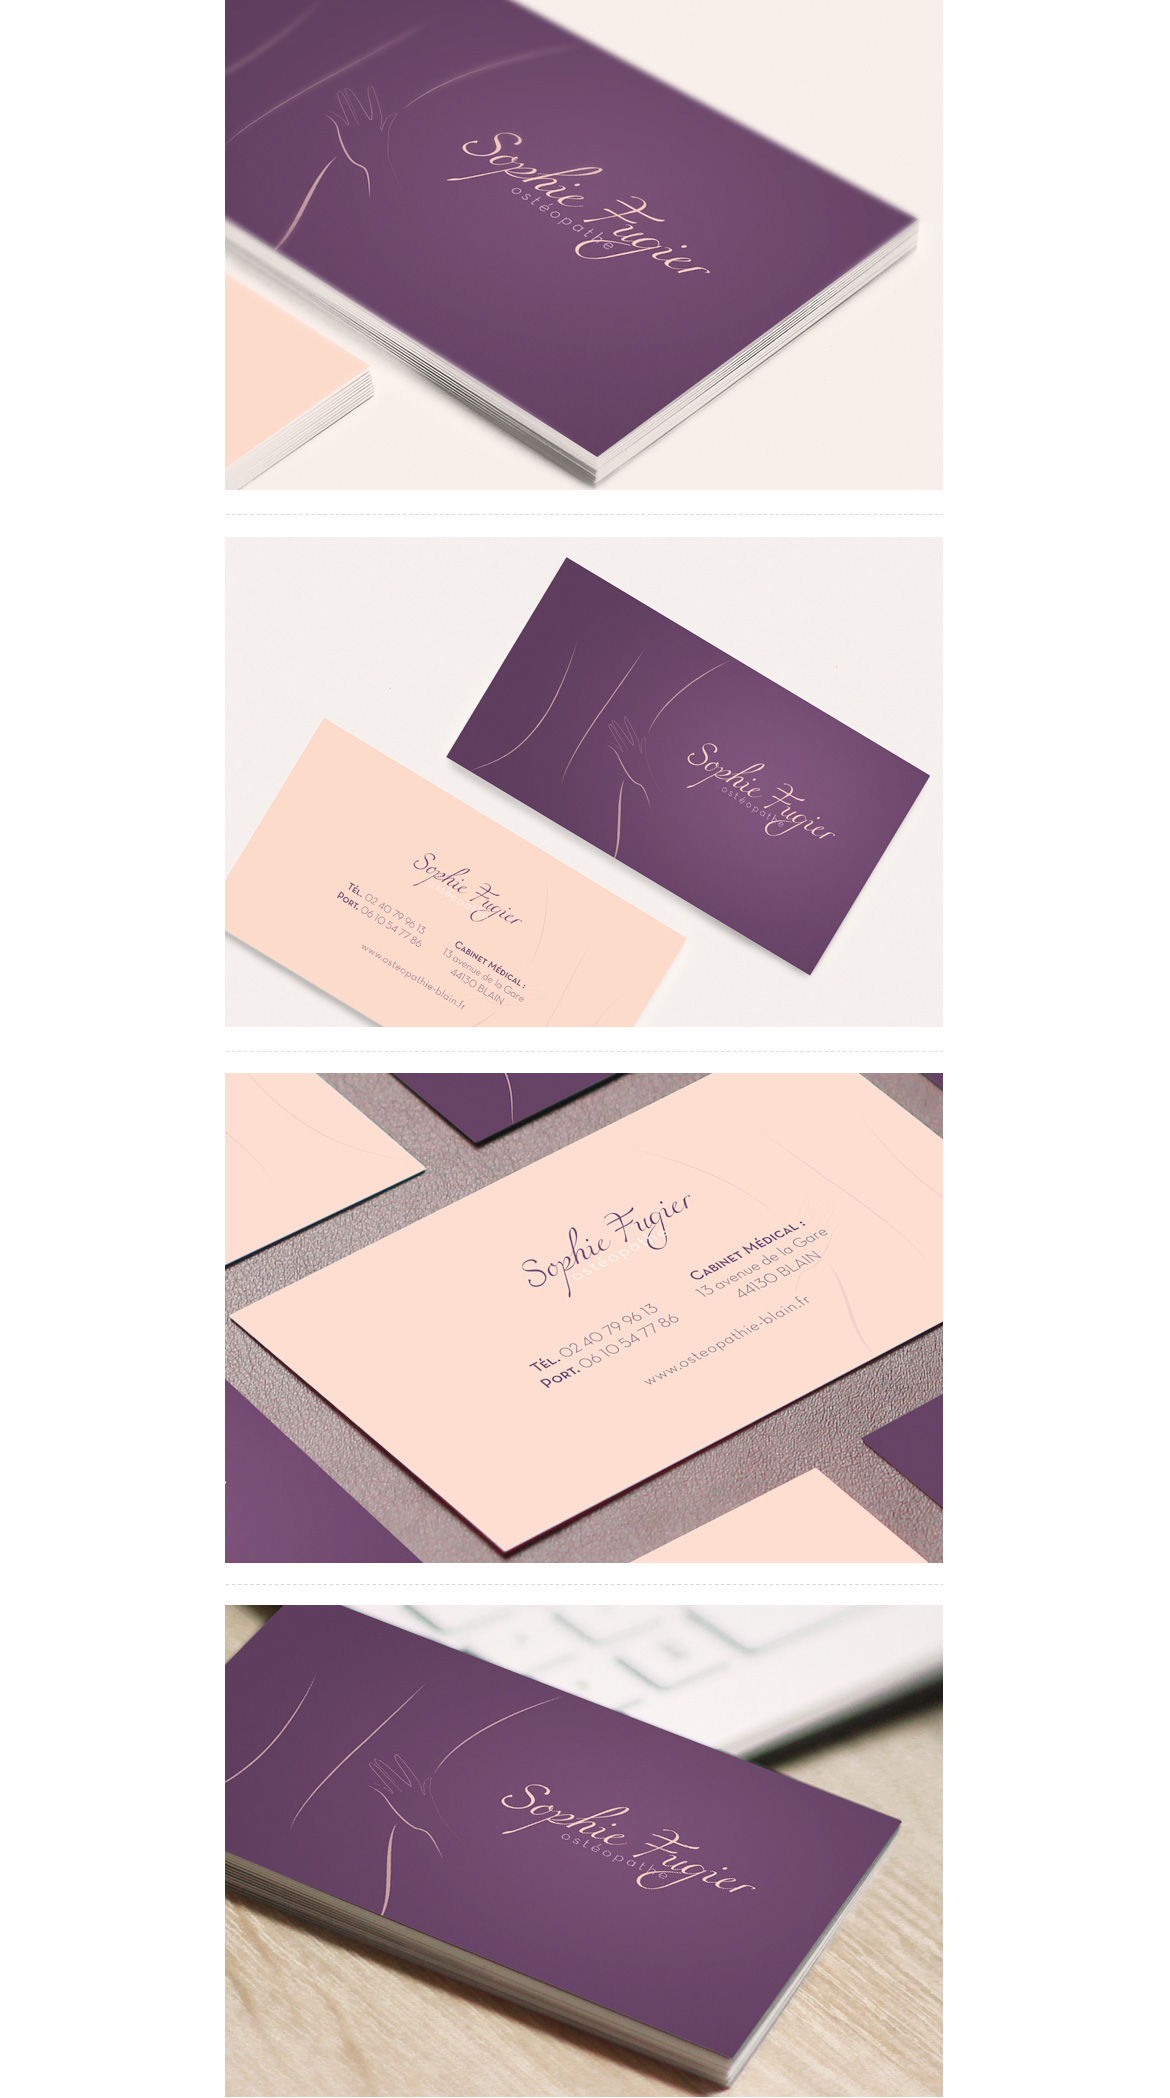 Details business card of Sophie Fugier, Do osteopath